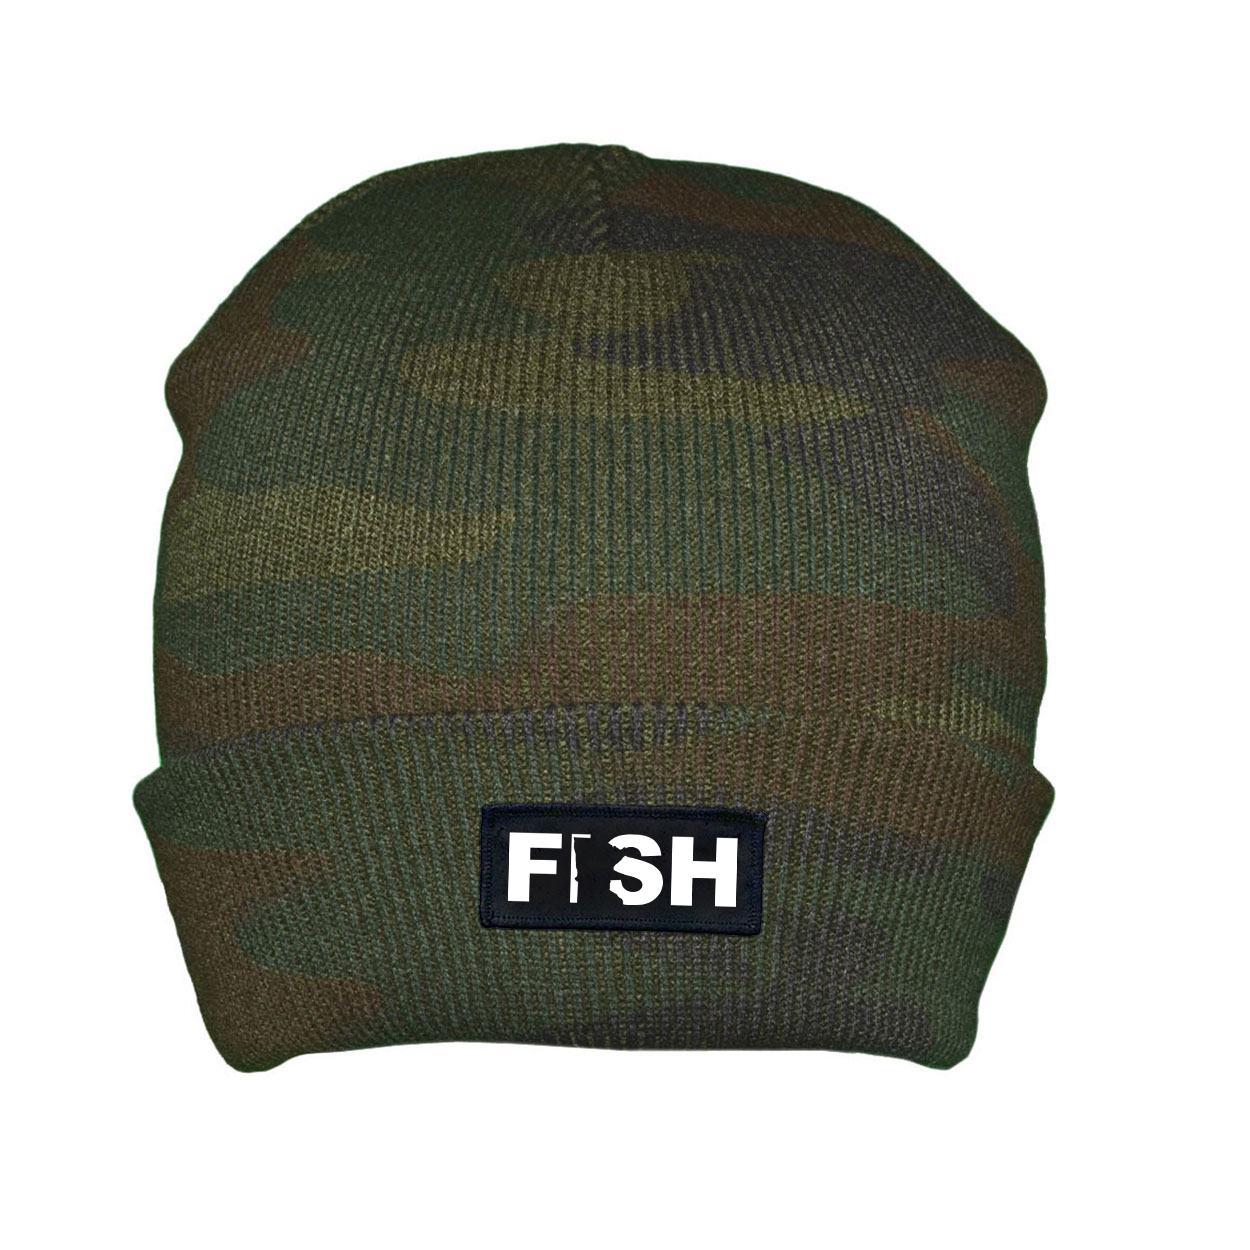 Fish Minnesota Night Out Woven Patch Roll Up Skully Beanie Camo (White Logo)